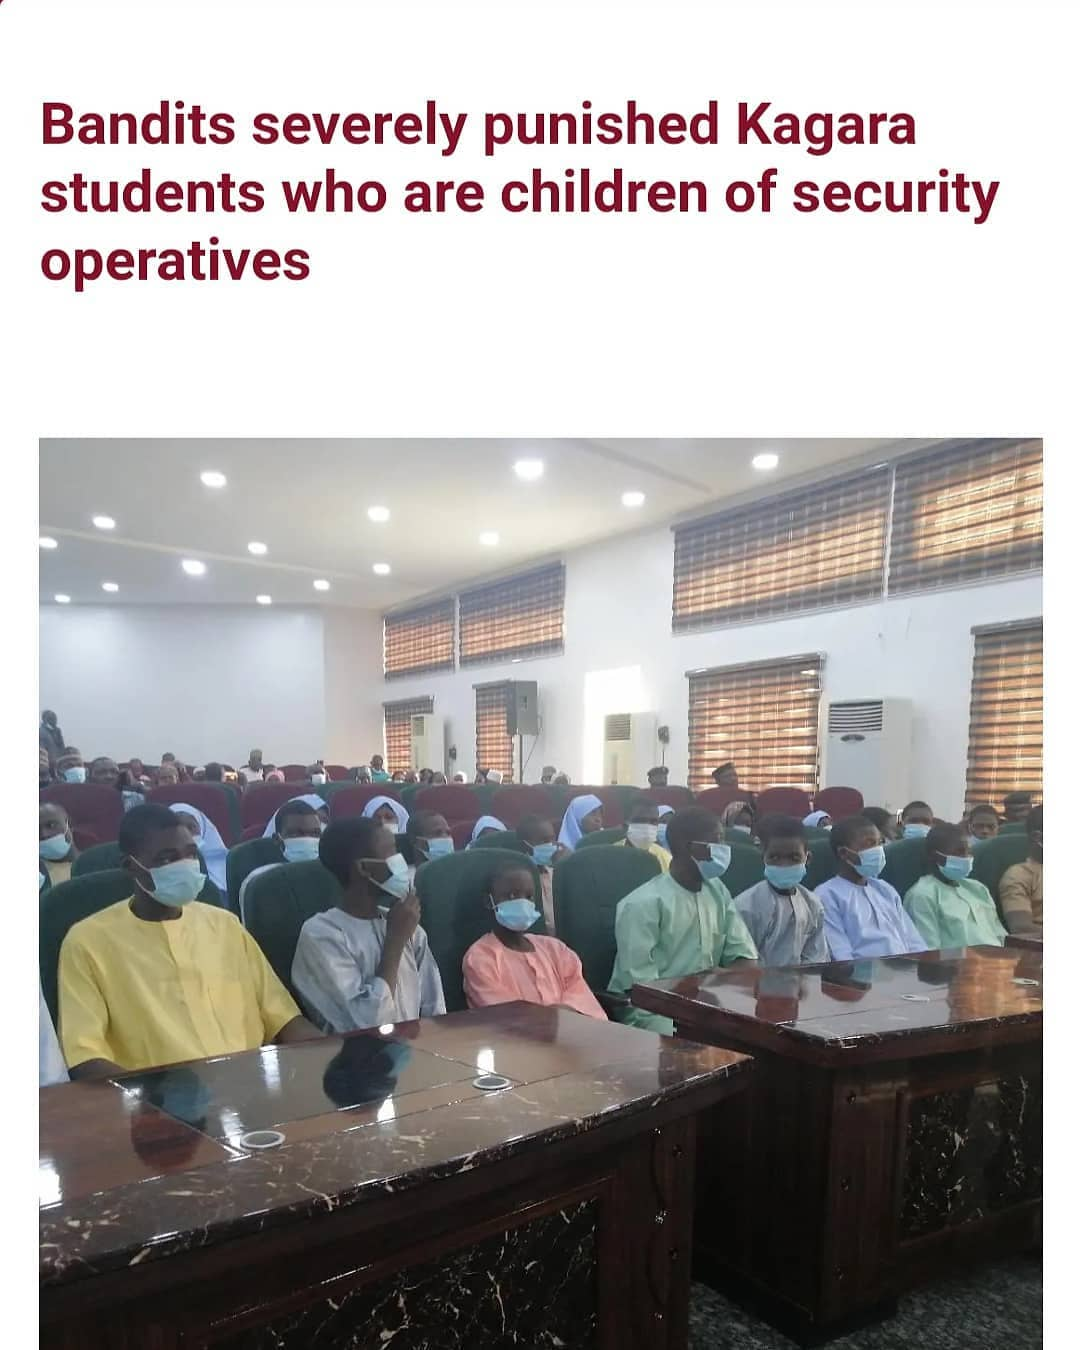 """Some students of Government Science College, Kagara, Niger State who regained freedom after being abducted by unknown gunmen, have shared their experience in captivity.  Recall that the gunmen had invaded the school on February 17, whisking staff and students into the forest after operating unchallenged for over two hours.  Some of the students narrated their experience after meeting with Governor Abubakar Sani Bello at government house in Minna on Saturday February 27.   Twenty-year-old Abubakar Sidi, an SS3 student, said they were punished based on their parents' occupation. He told Daily Trust that those who were children of security operatives, were punished severely.   He said """"We didn't get food to eat till night the first day but they later fed us, and after feeding us they asked us about our parents' occupation. 'If you father is a policeman, come here.' 'If your father is a soldier, come here.'  """"They beat us seriously but the beating was based on the occupation of our fathers. I wish I could die because the beating was too much. It was really tough in the forest.""""  Mahmood Mohammed, another student, said he was delighted having the opportunity to reunite with his loved ones.  He said """"I faced hell in captivity; it was not easy at all. I did not even know that I will come out again. I felt inside the bush and they didn't take care of me… I am very happy because God has given me the opportunity to reunite with my loved ones.  """"We are happy to see all the government officials who came out in their numbers to welcome us. This has shown to us the level of concern they have towards us while we were in the wilderness. My decision of going back to the school is in the hands of my parents."""""""